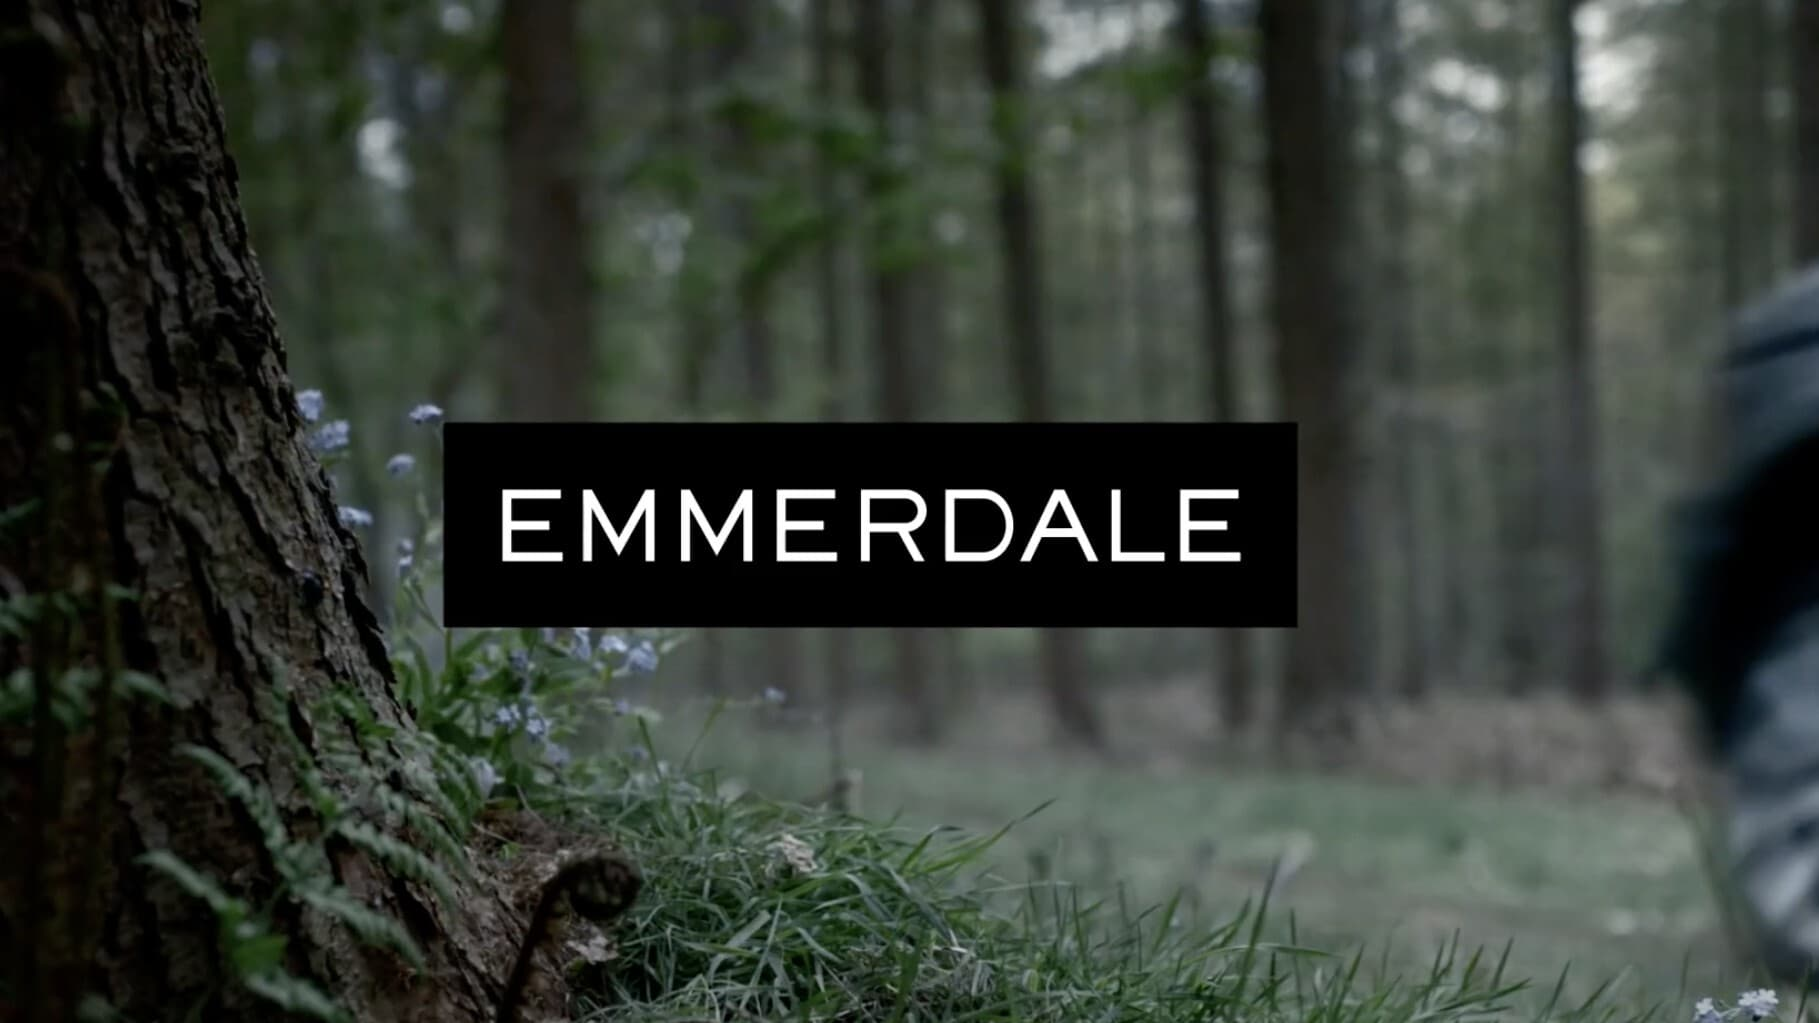 Emmerdale - Season 46 Episode 272 : Wednesday 30th October 2019